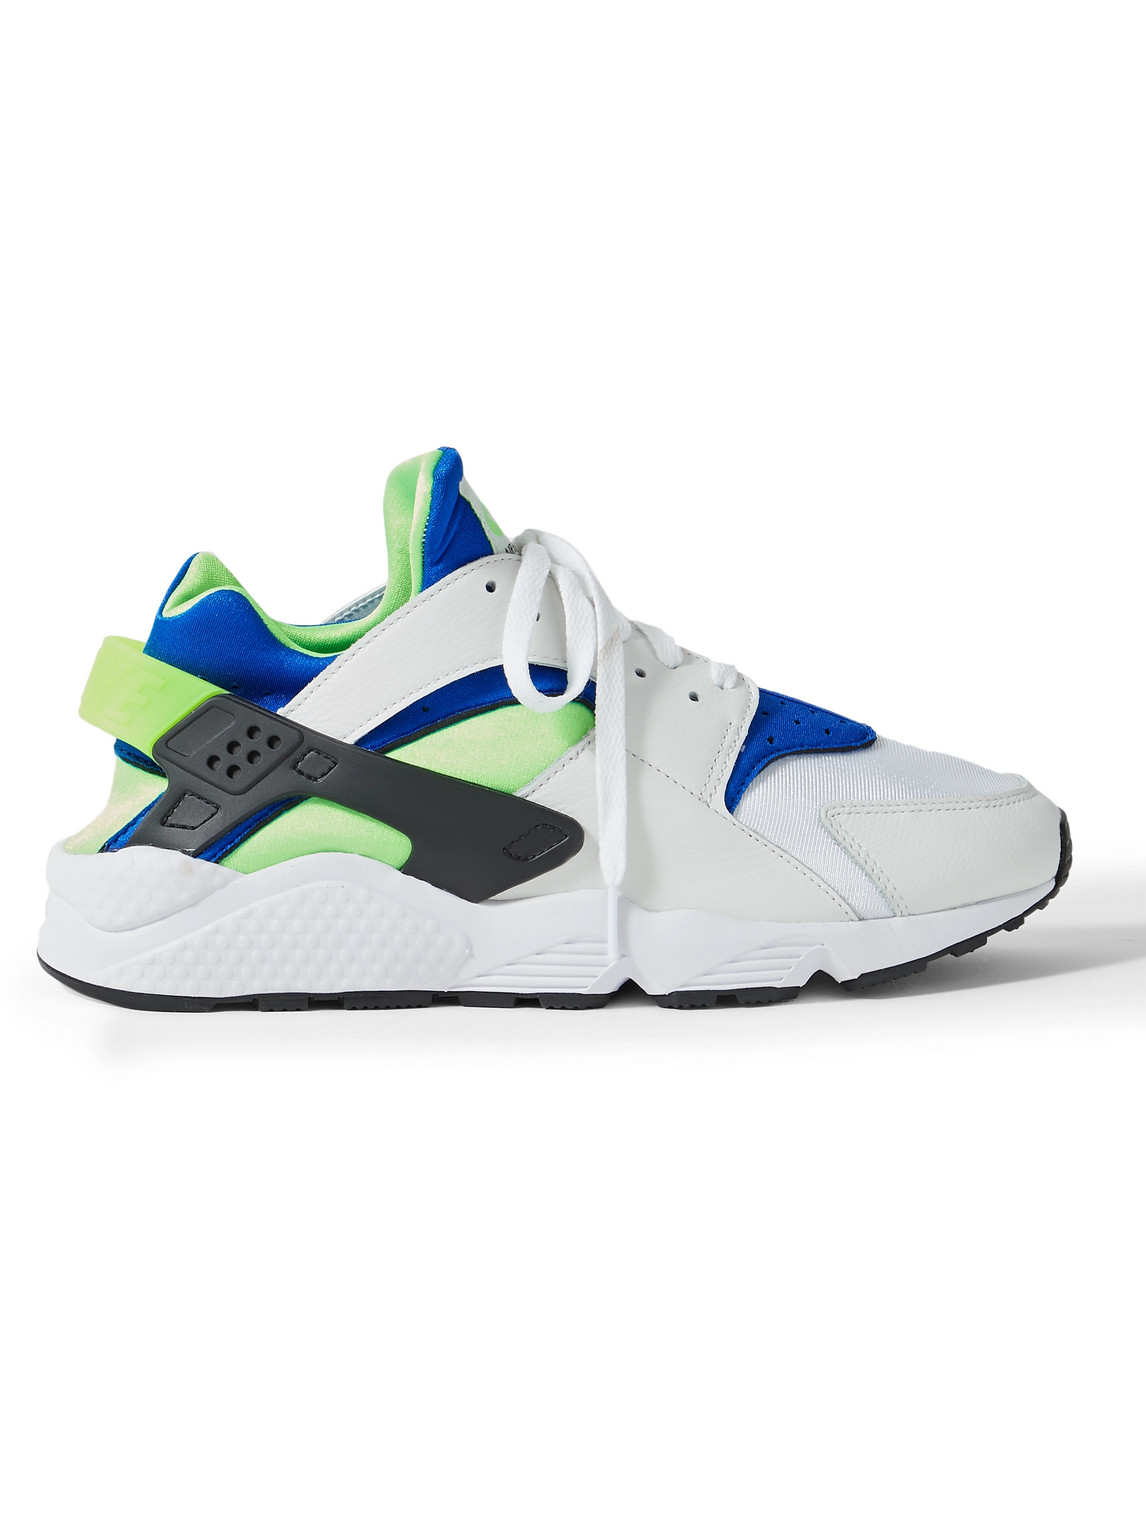 Nike - Air Huarache Leather And Rubber-Trimmed Neoprene Sneakers - Men - White - Us 7.5